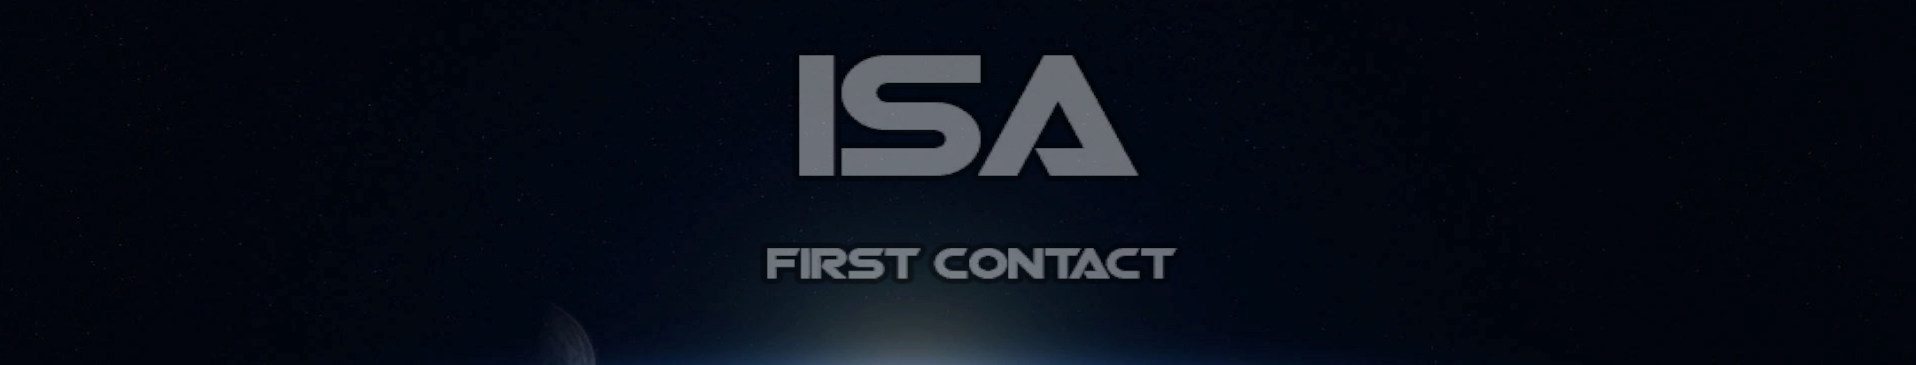 Isa First Contact